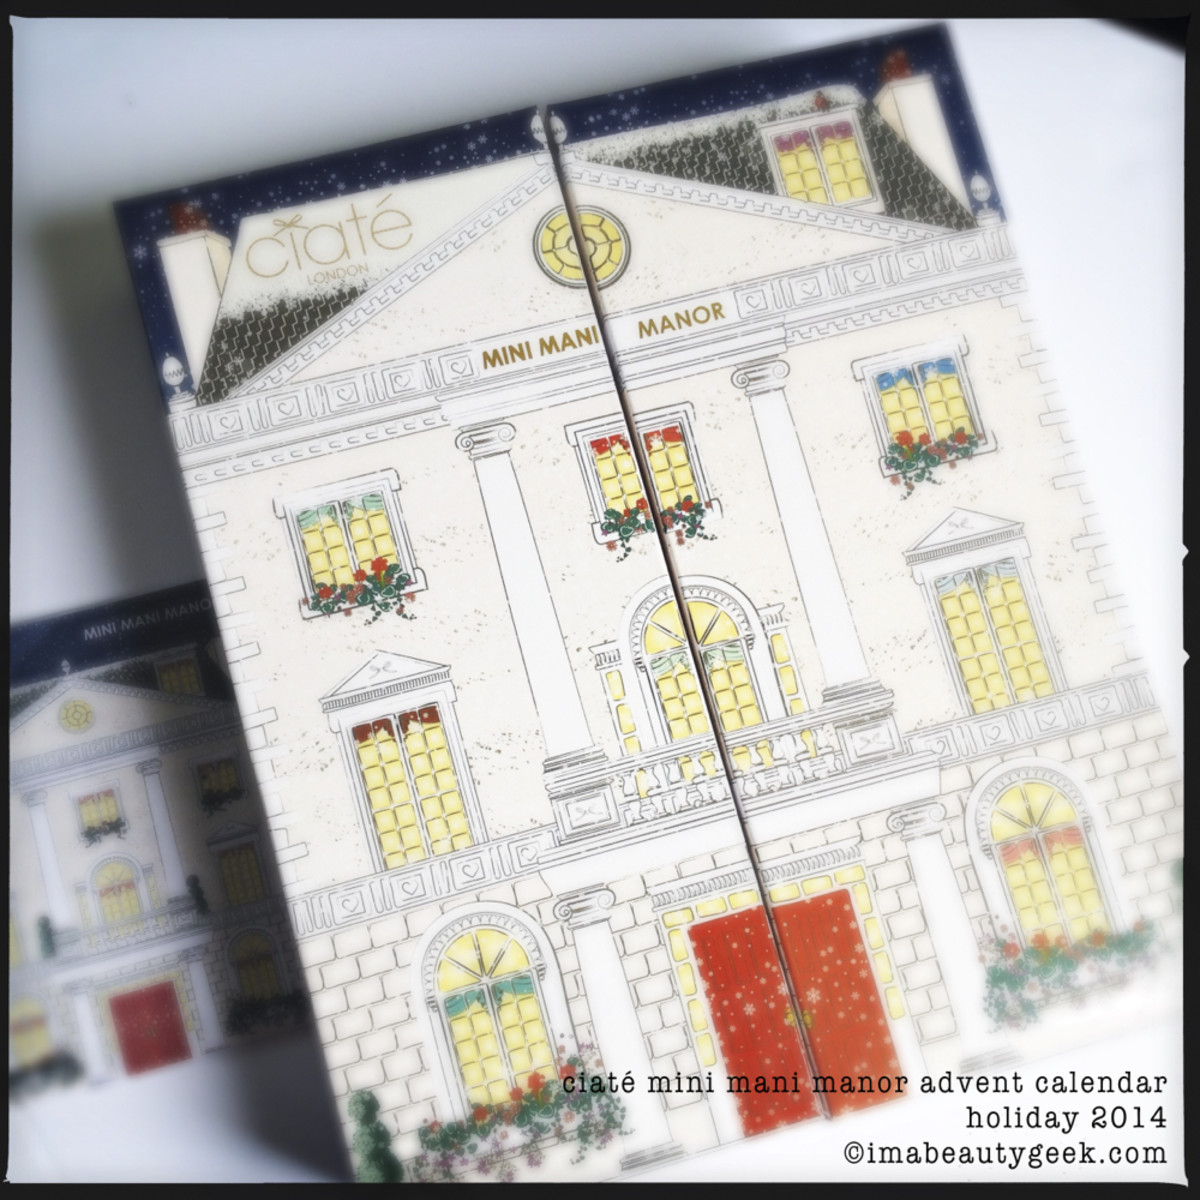 advent calendars 2014_Ciate-Mini-Mani-Manor-Advent-Calendar-2014_2